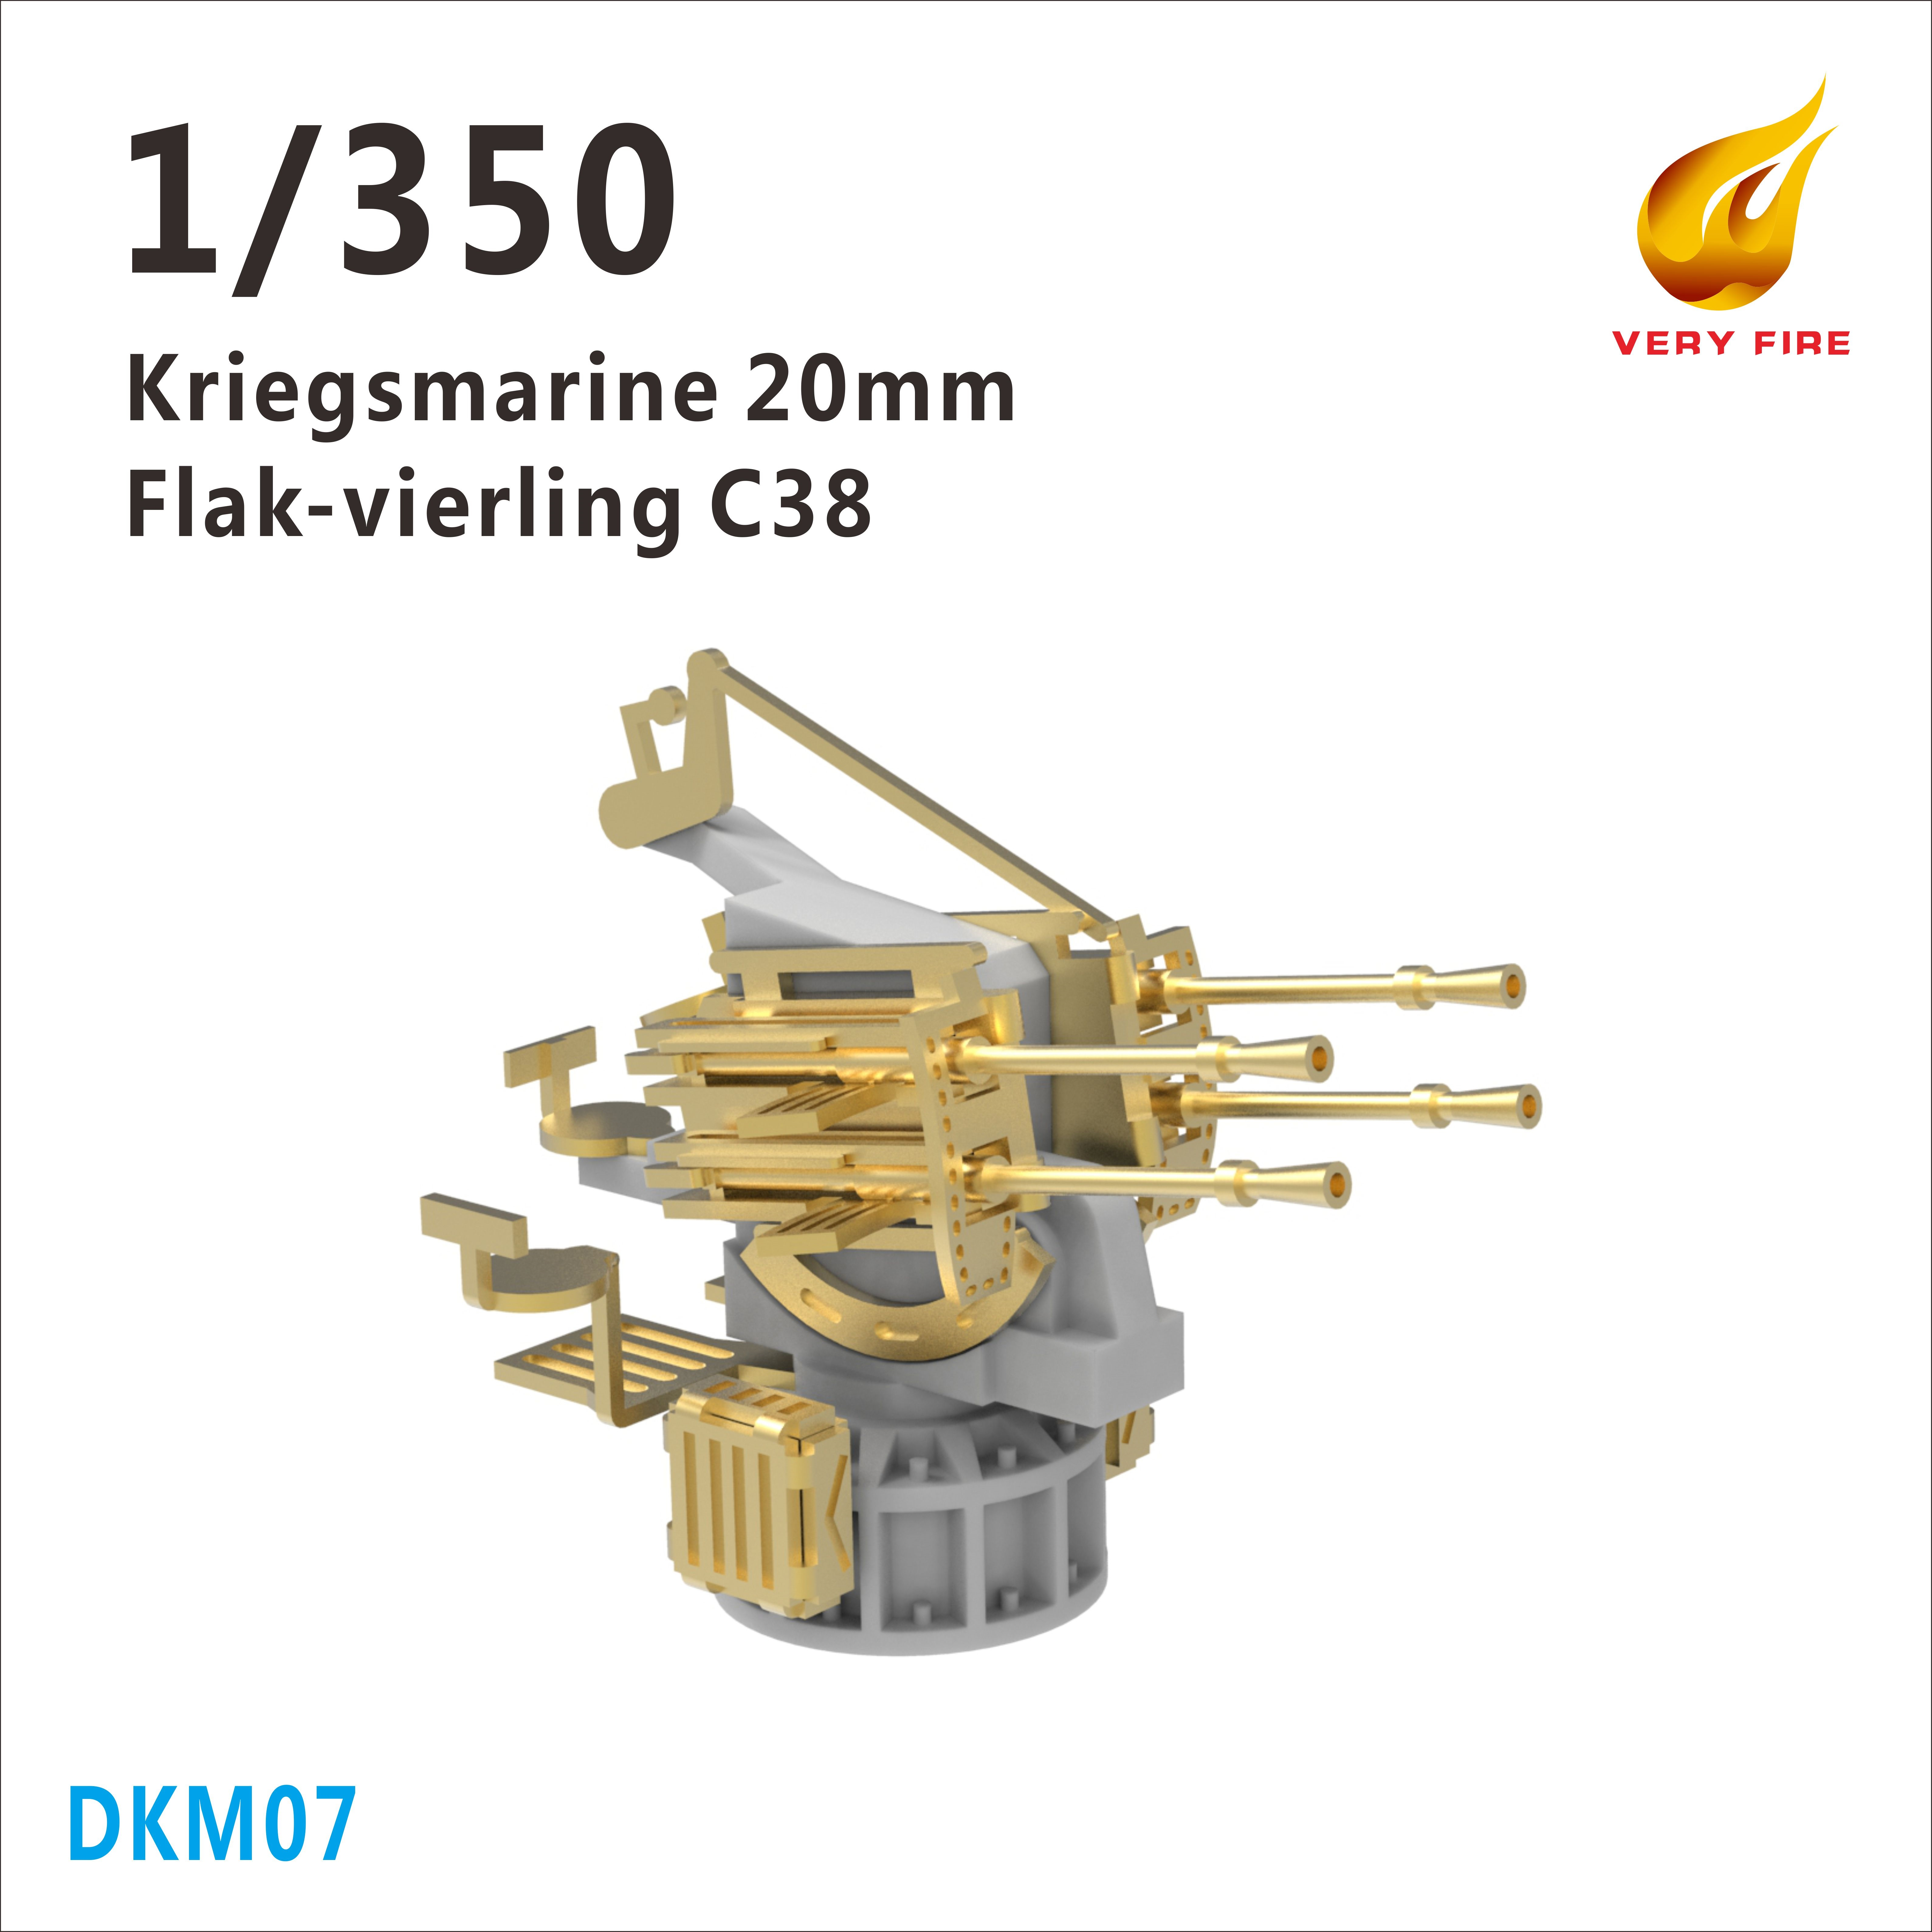 Very Fire 1/350 DKM Kriegsmarine 20mm Flakvierling C38 AA Guns (4 Sets)